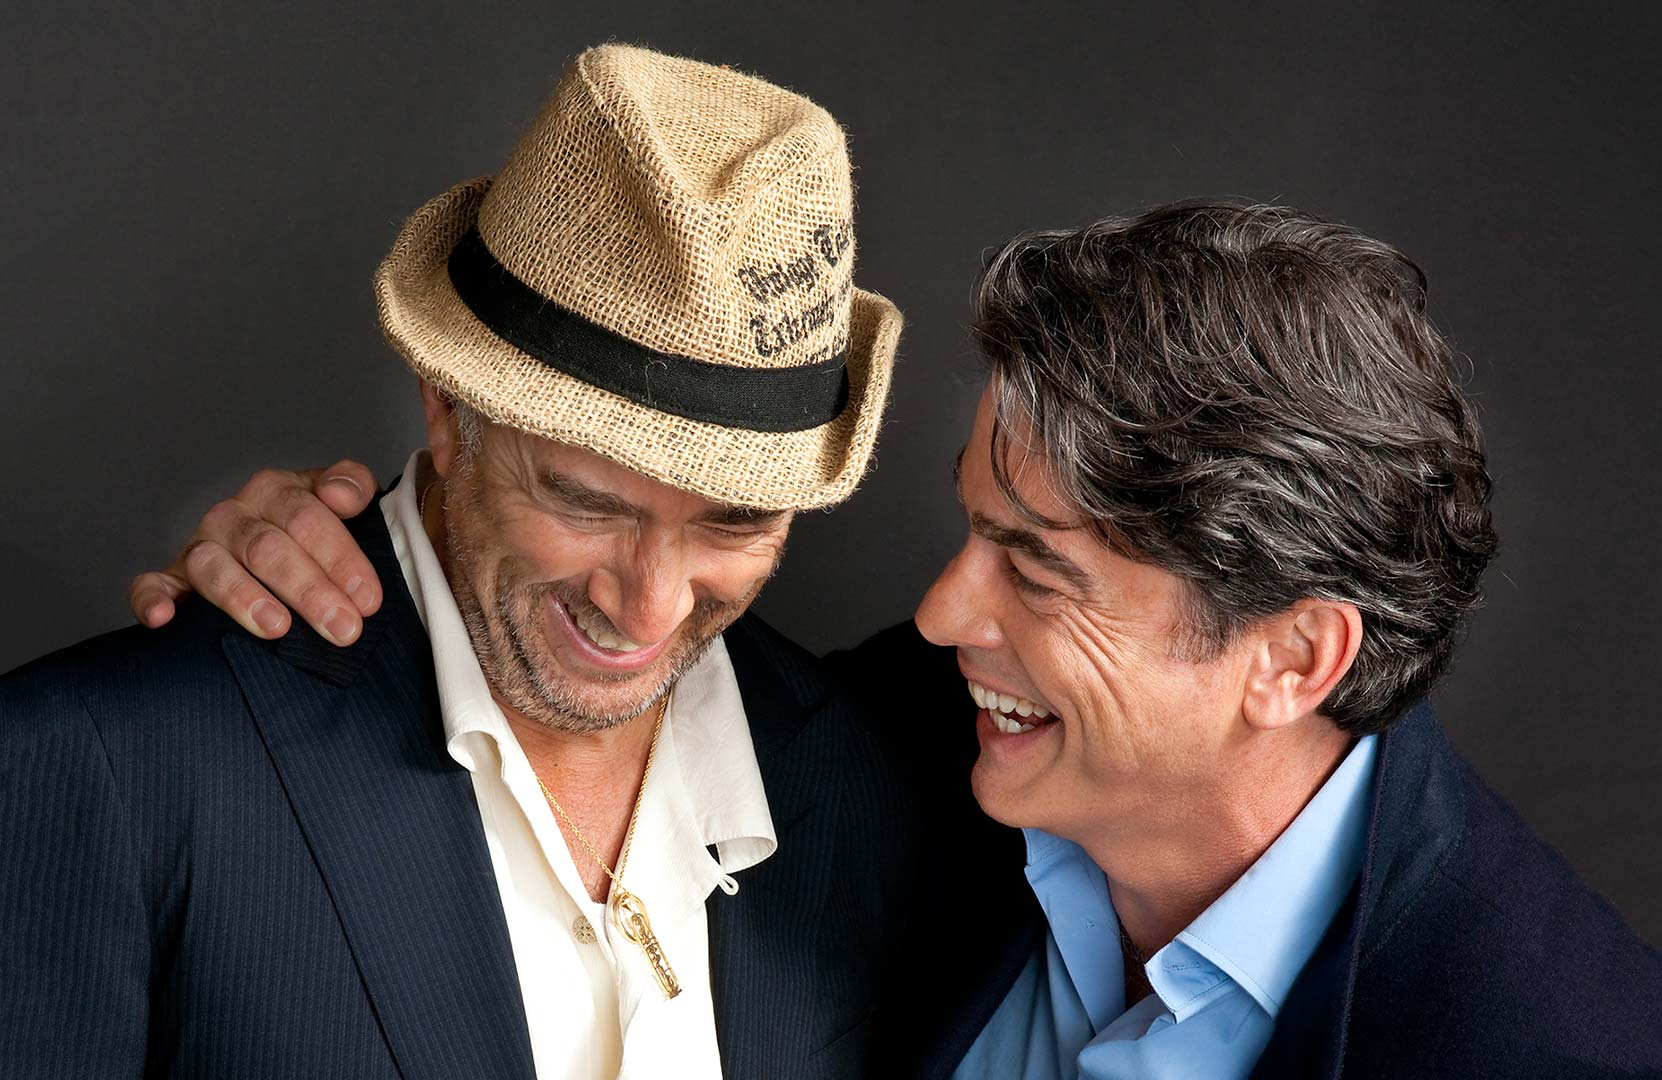 Celebrity portrait photography of Richard Schiff and Peter Gallagher